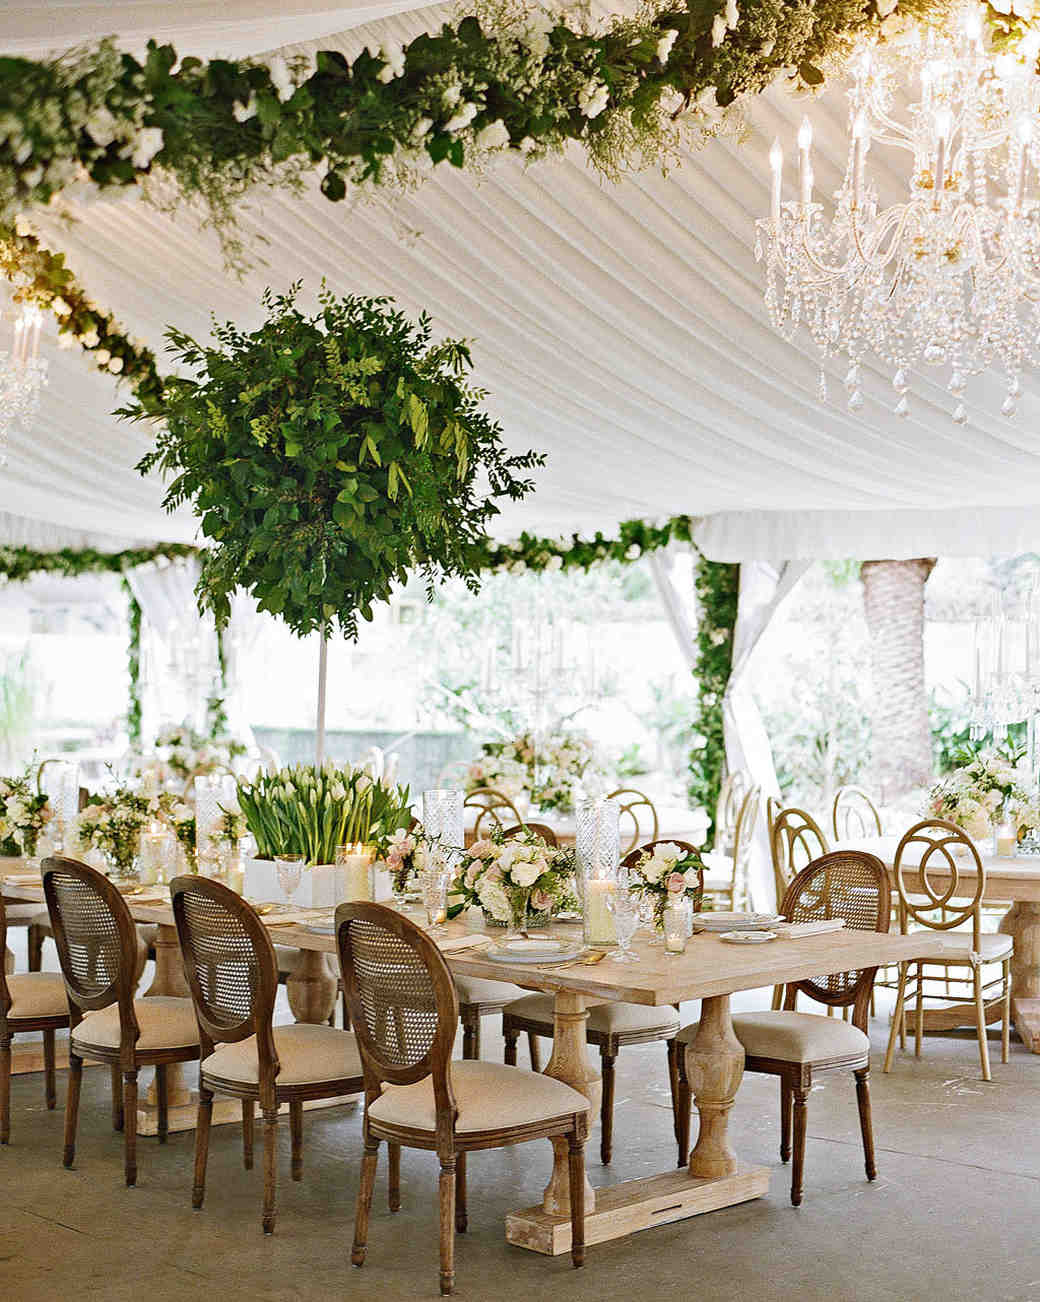 wedding decor ideas | My Web Value